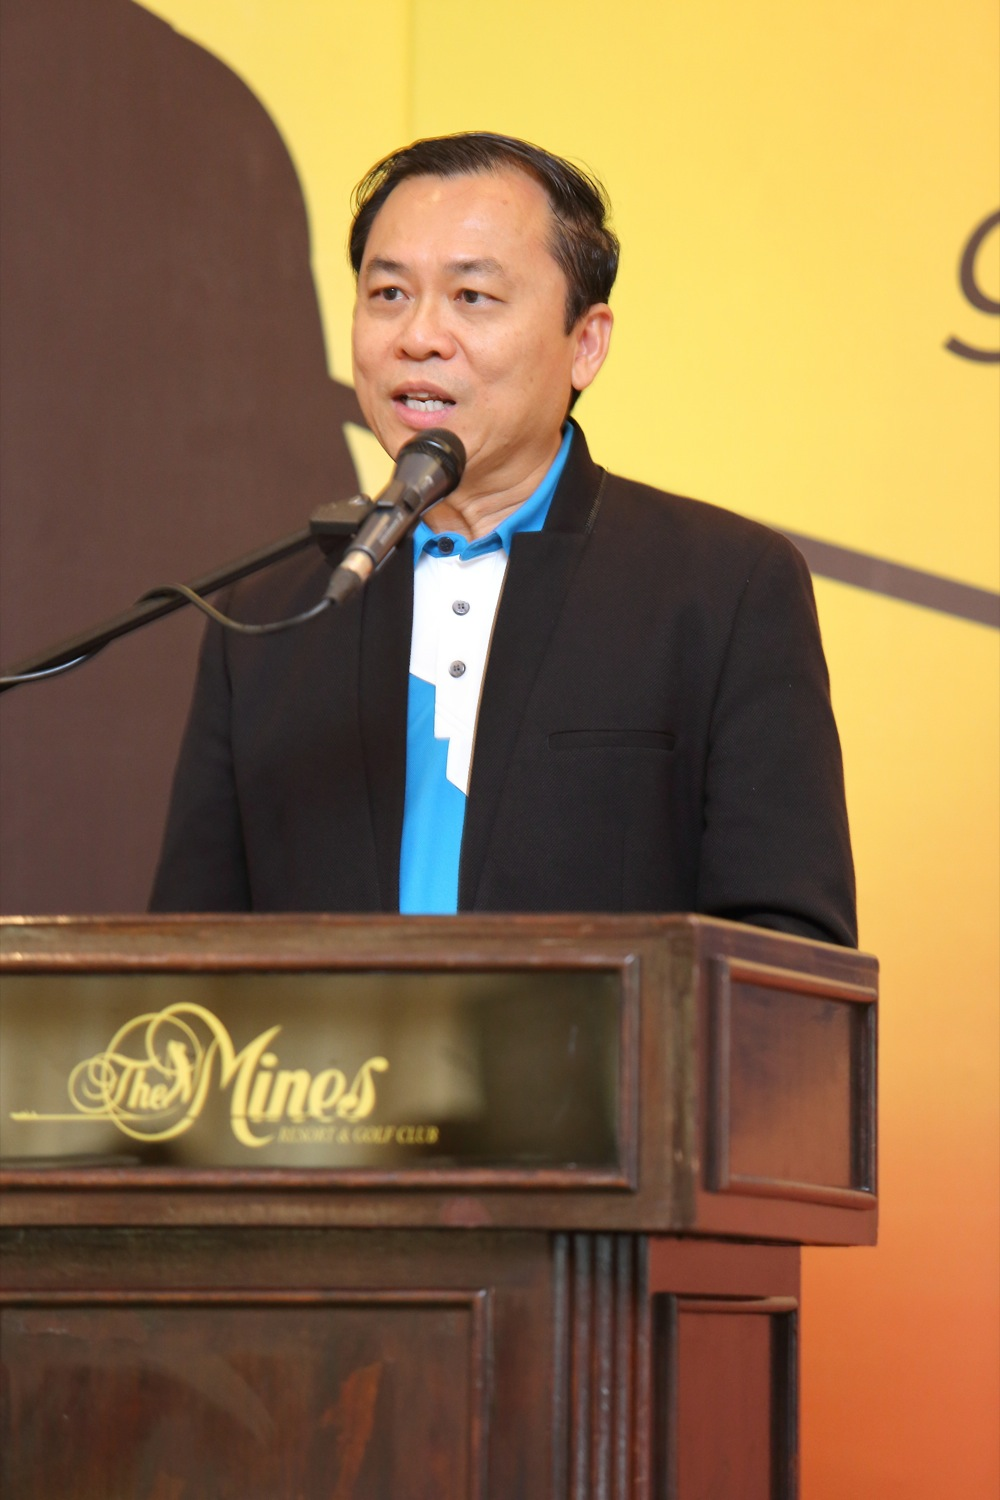 Clement Loh speaking at GoGolf launch event